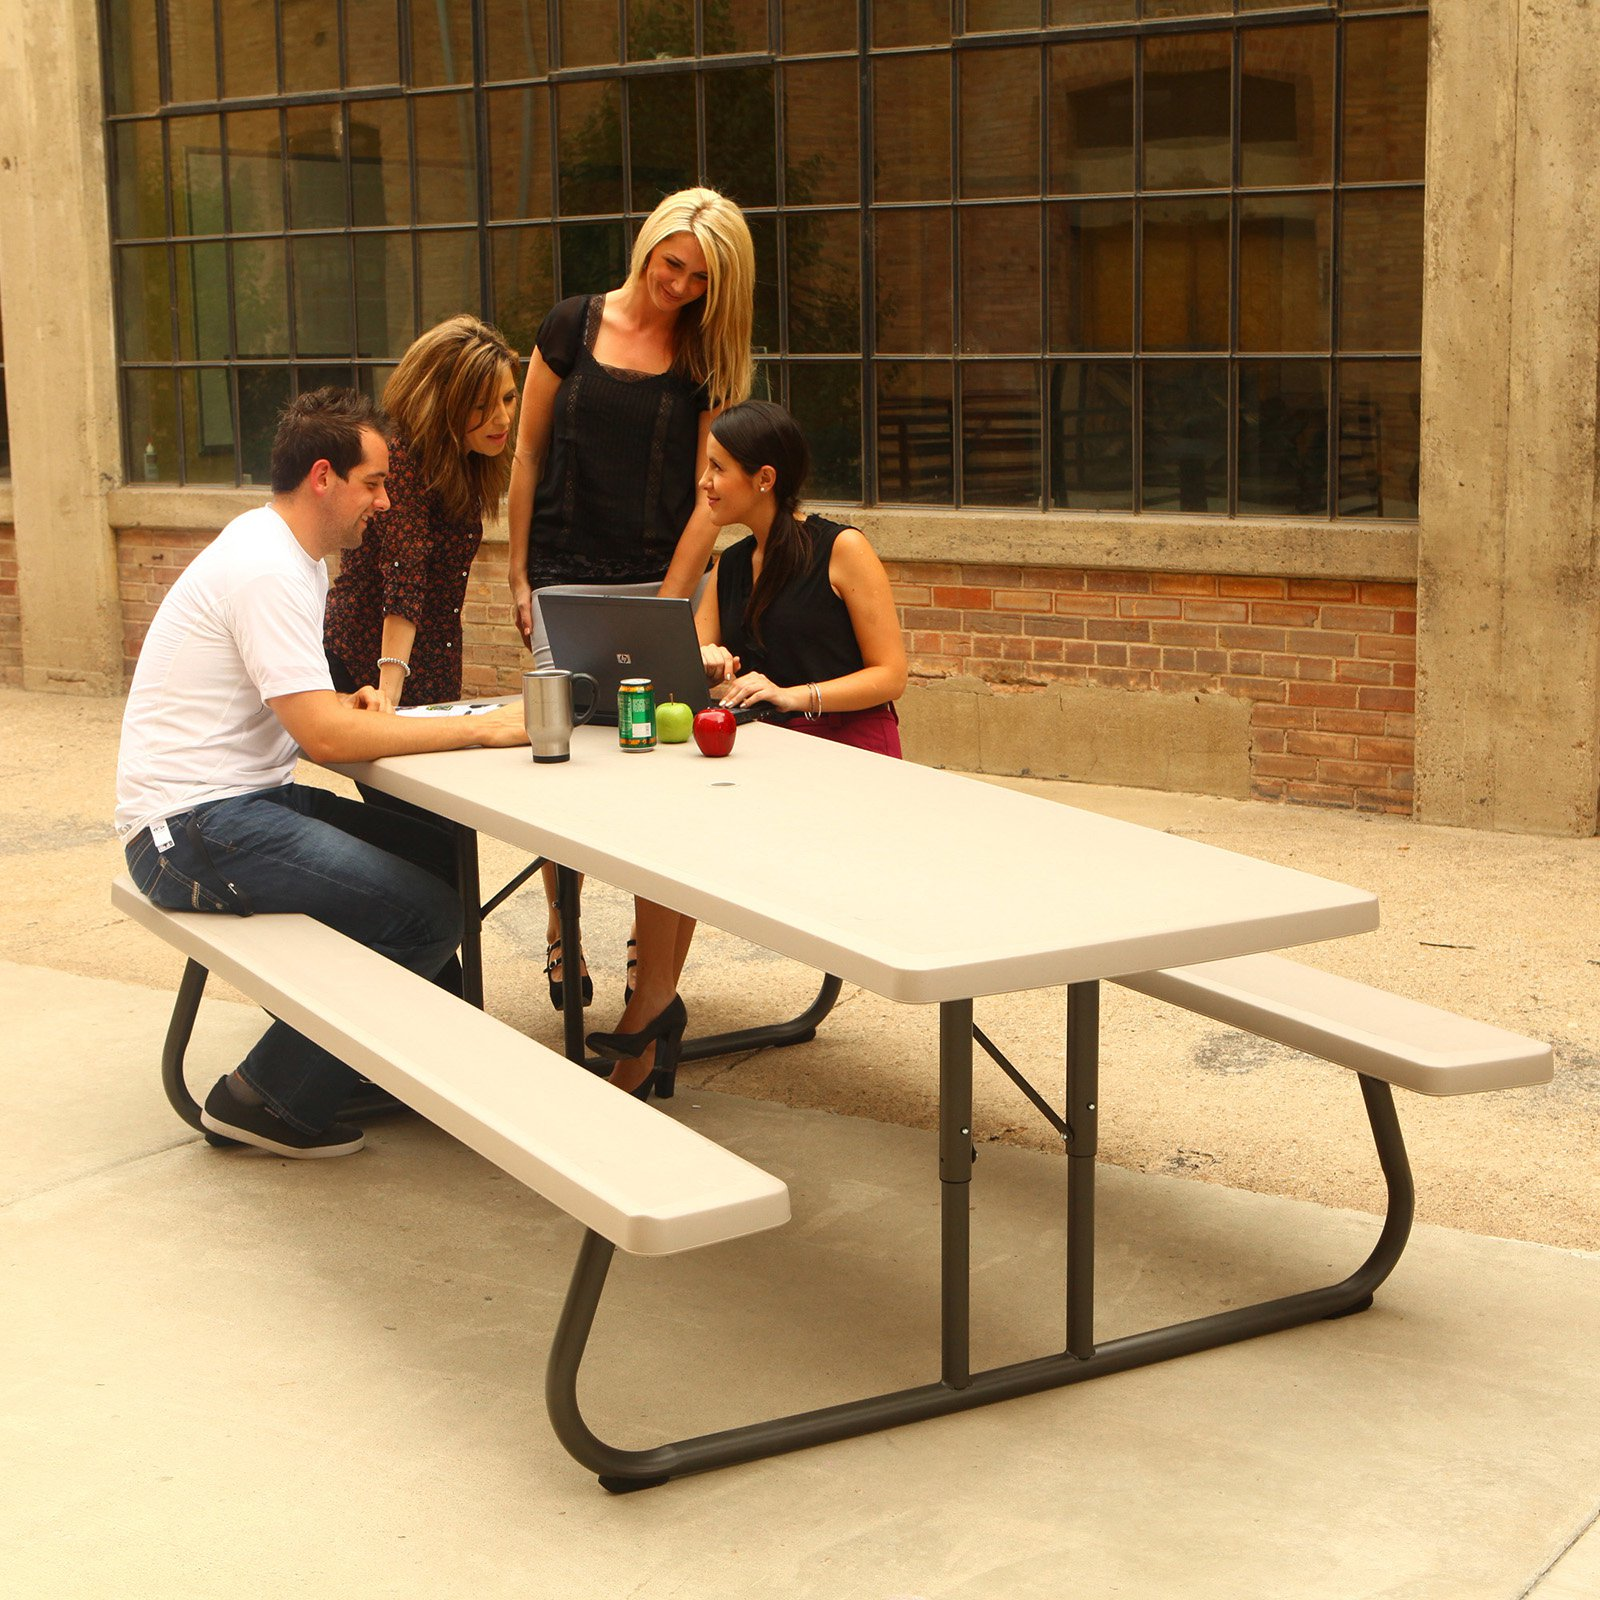 Lifetime 8-Foot Classic Folding Picnic Table, Almond, 80123 by Lifetime Products